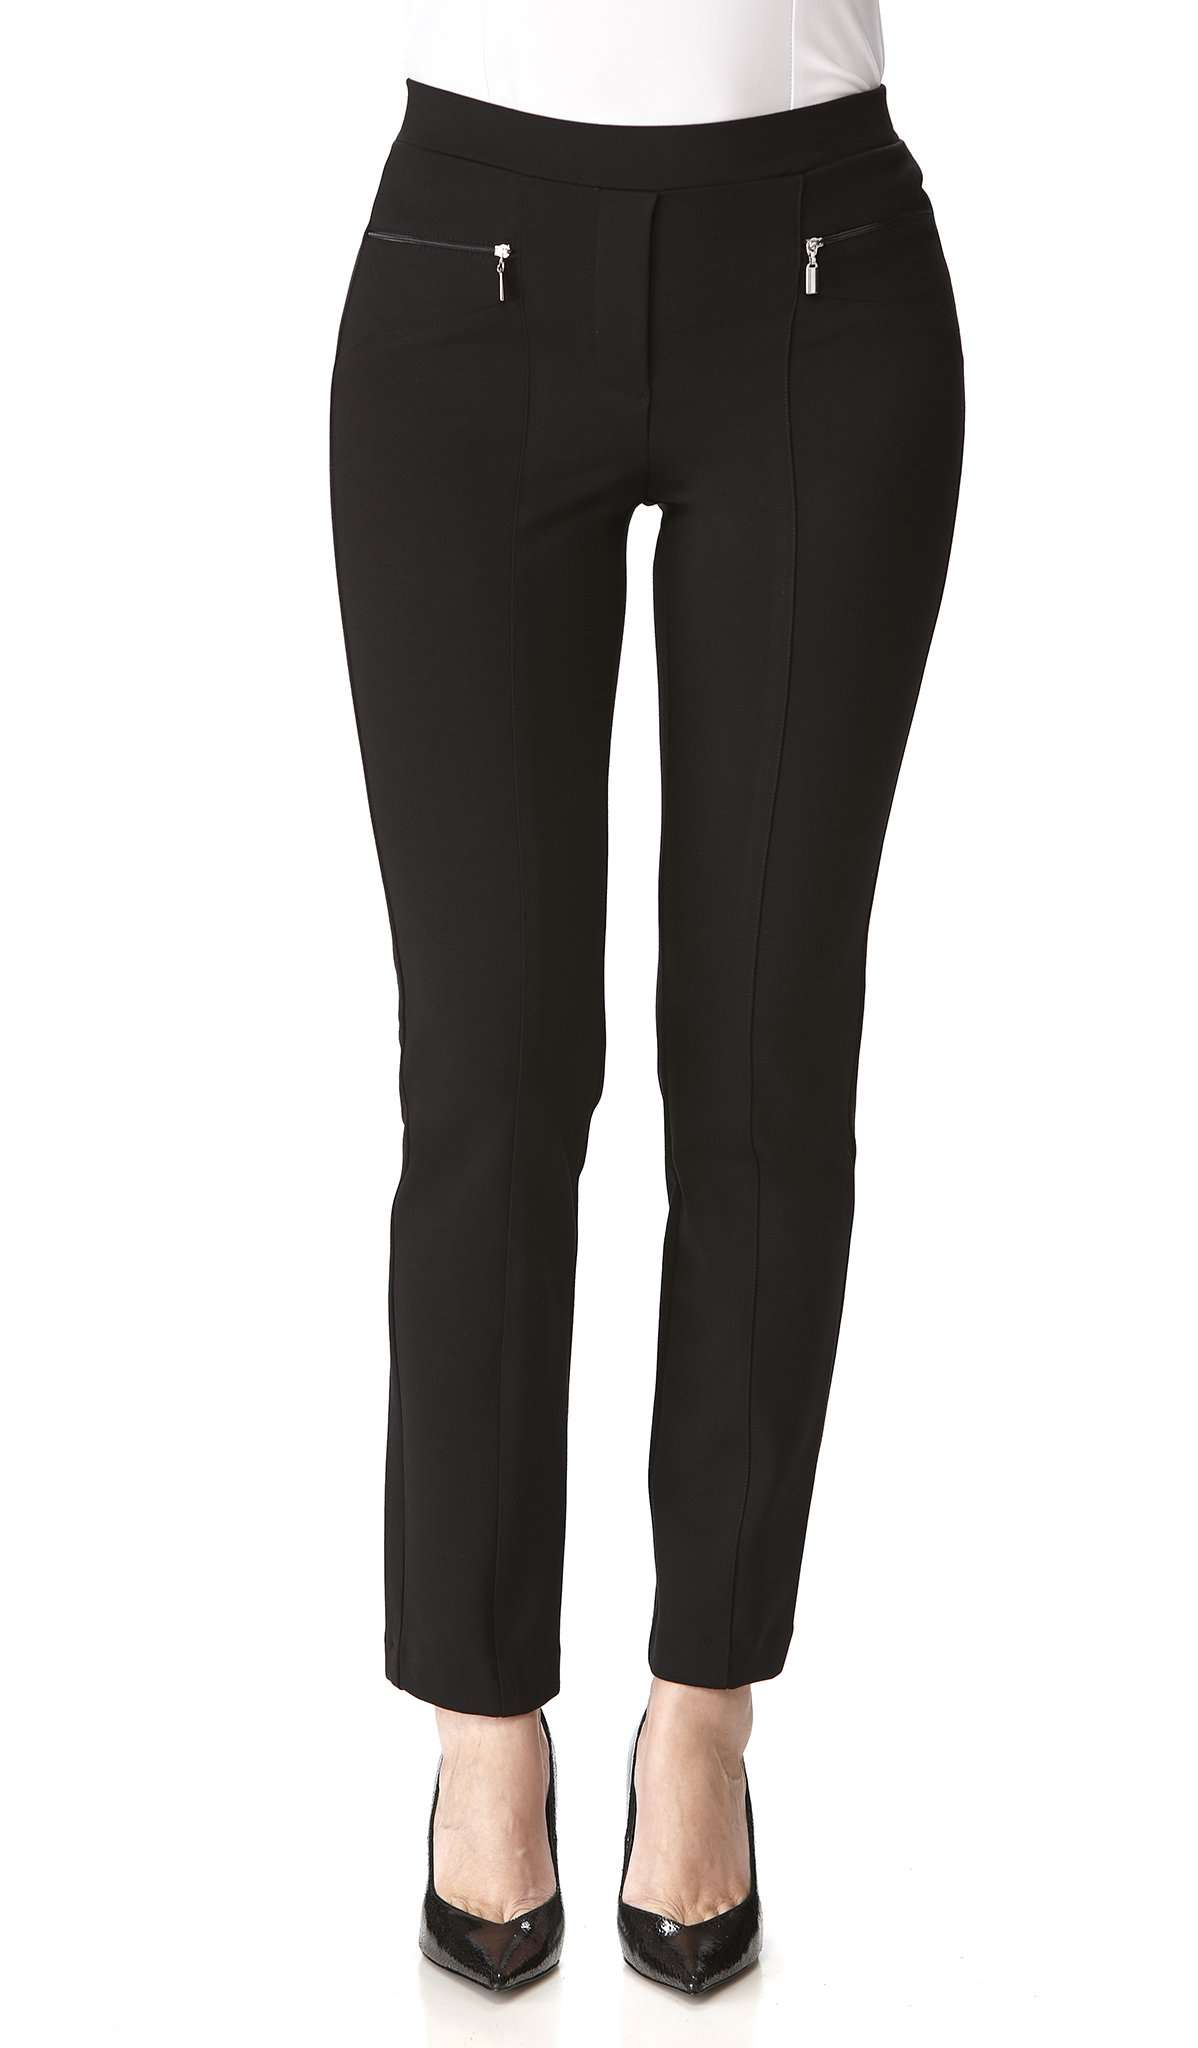 Women's Black Pants Zipper Front Detail - Comfort and Quality-Made in Canada - Yvonne Marie - Yvonne Marie